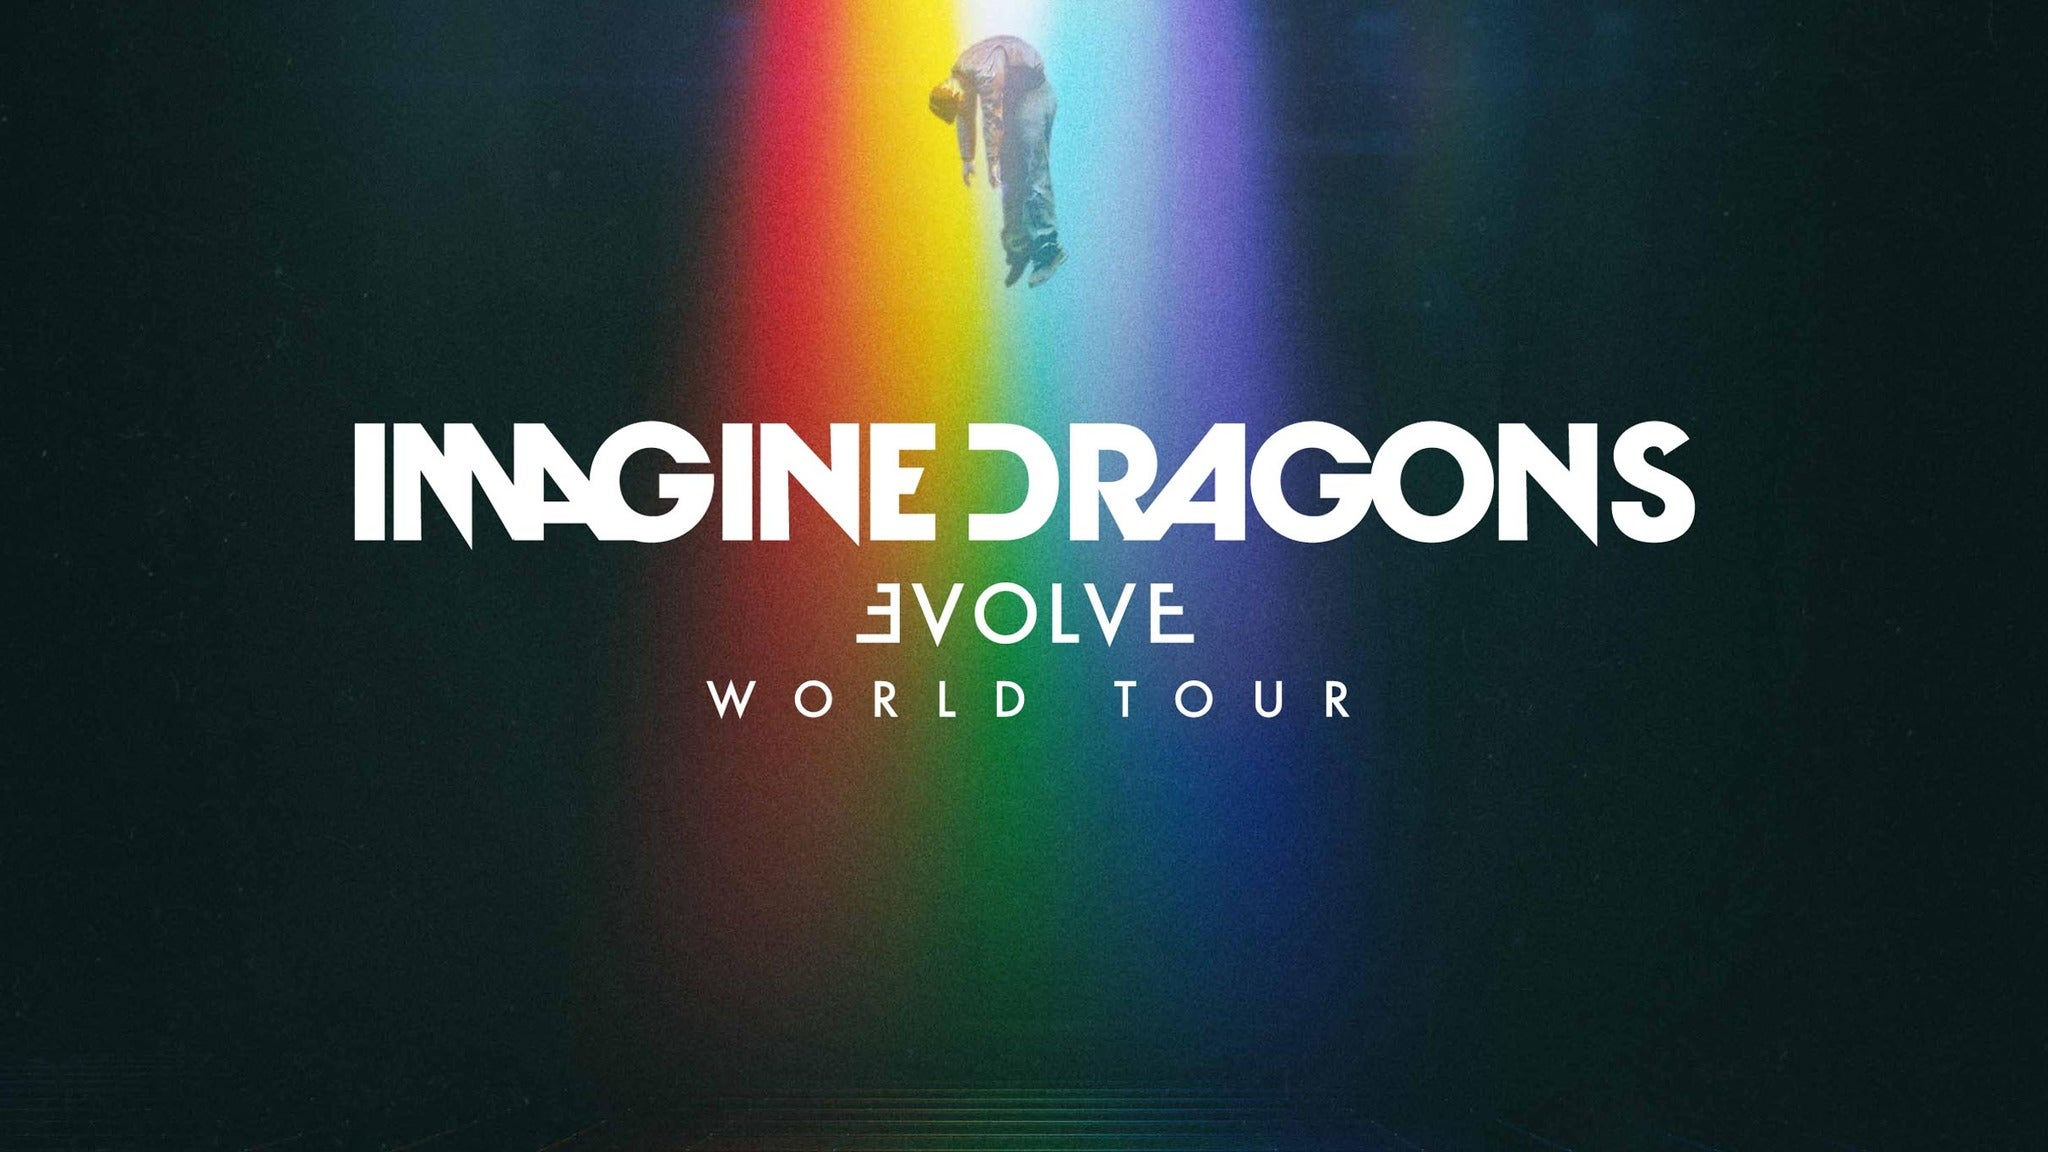 Imagine Dragons: EVOLVE TOUR at Concord Pavilion